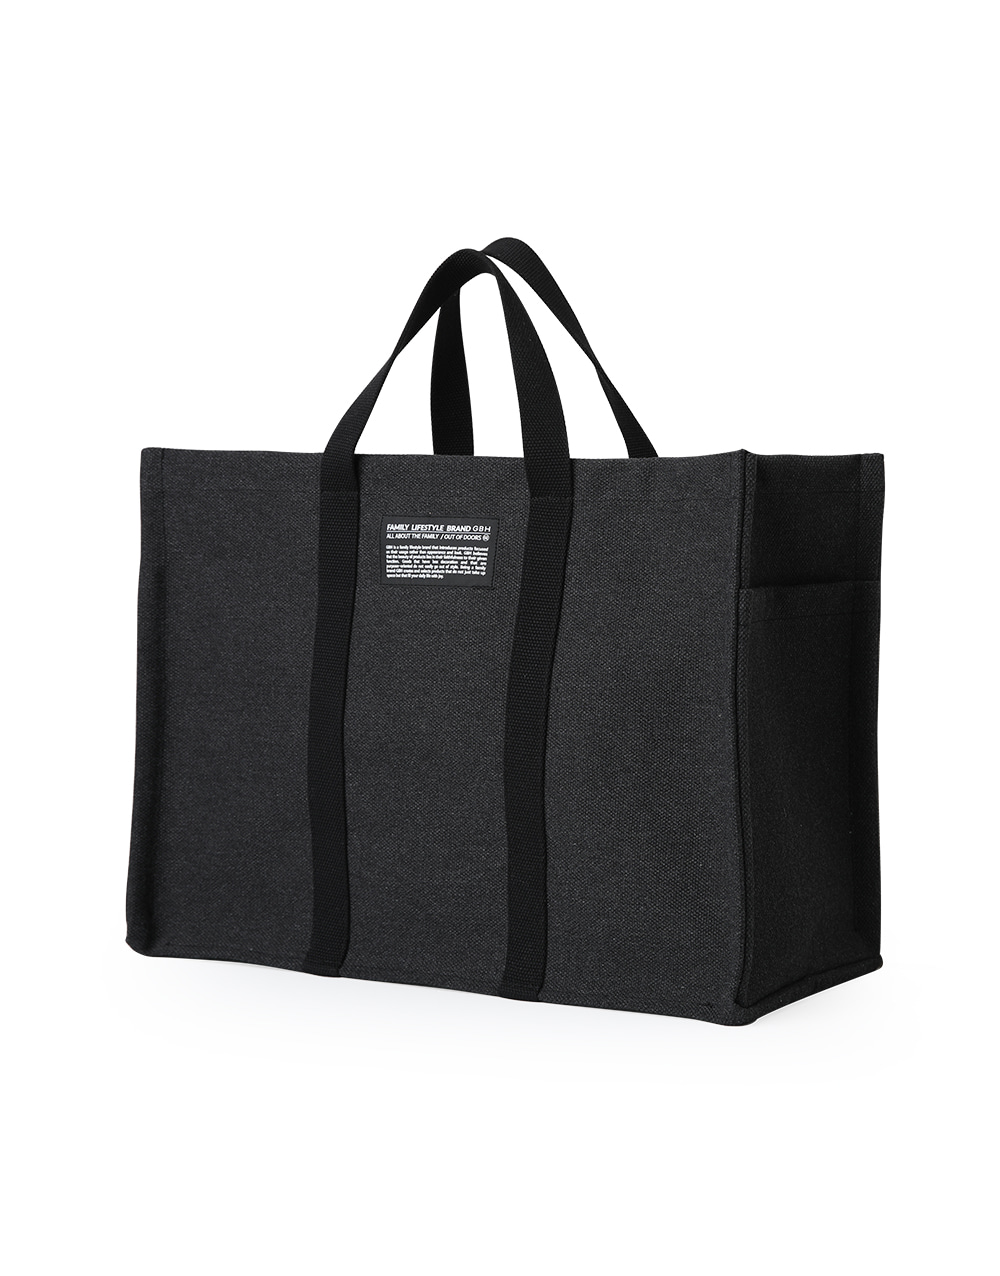 GBH HOME  PICNIC BAG  CHARCOAL